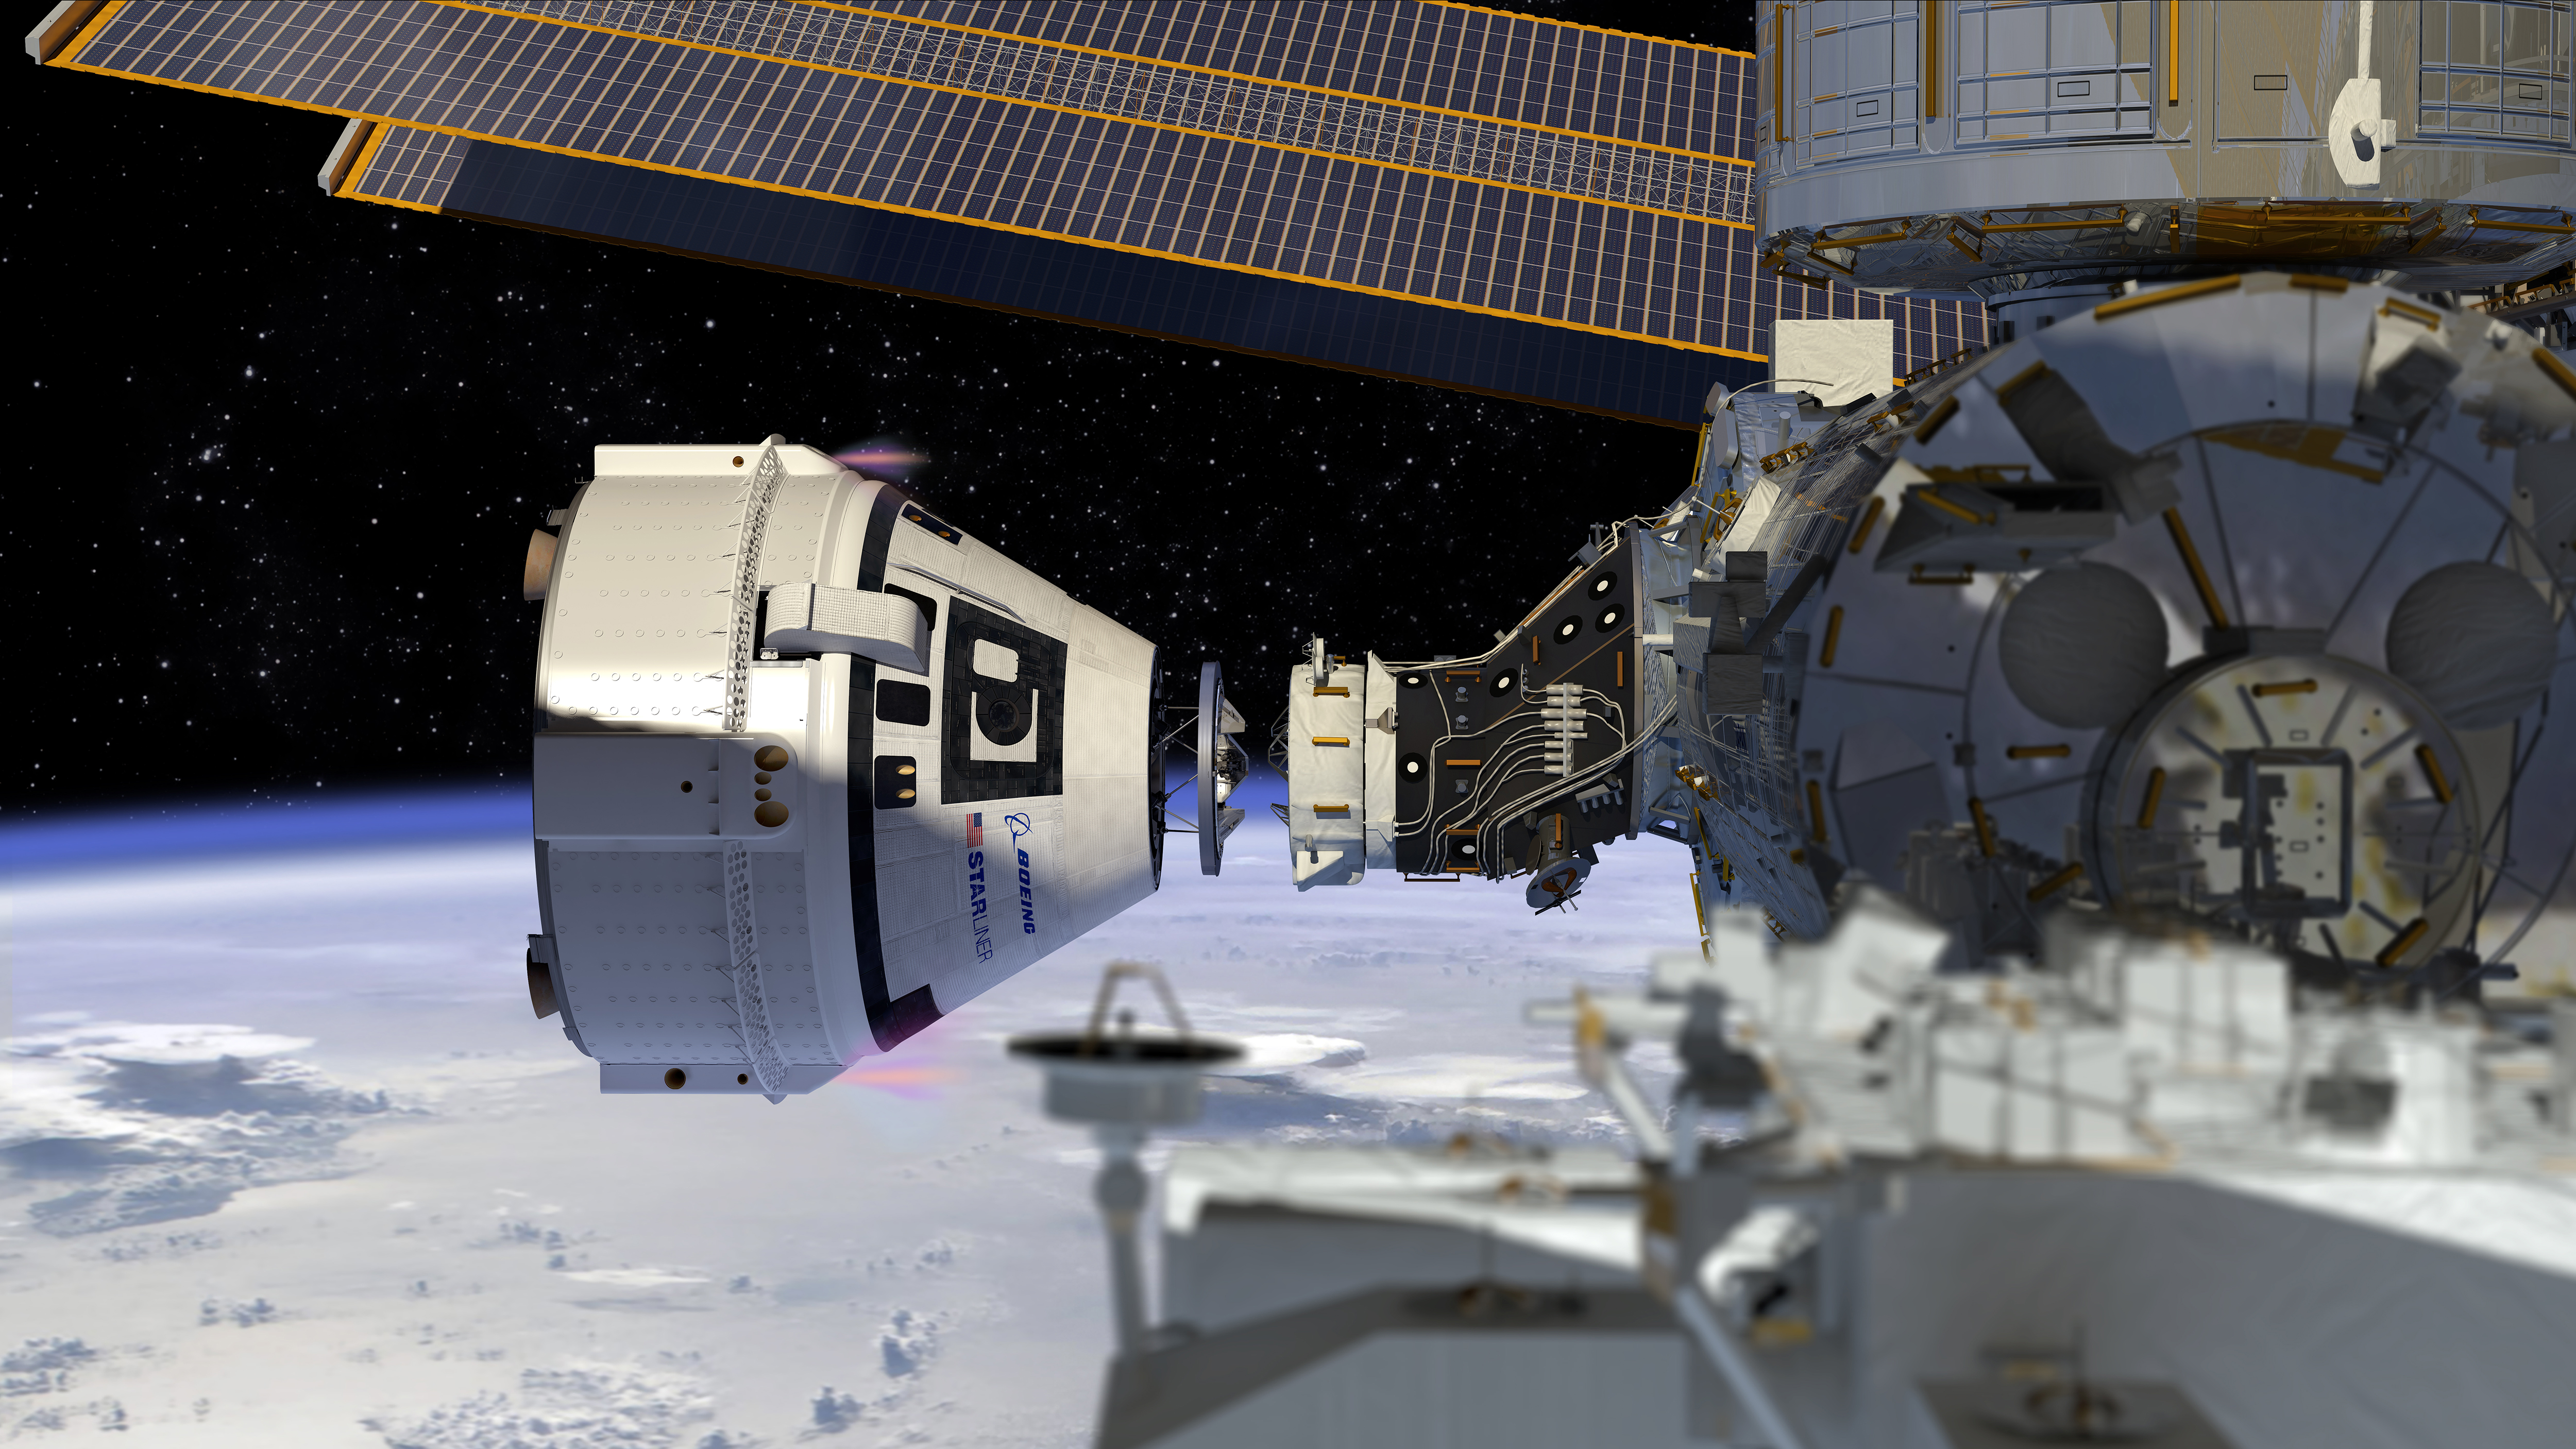 NASA reassigns 2 space explorers from Boeing's Starliner to SpaceX's Crew Dragon